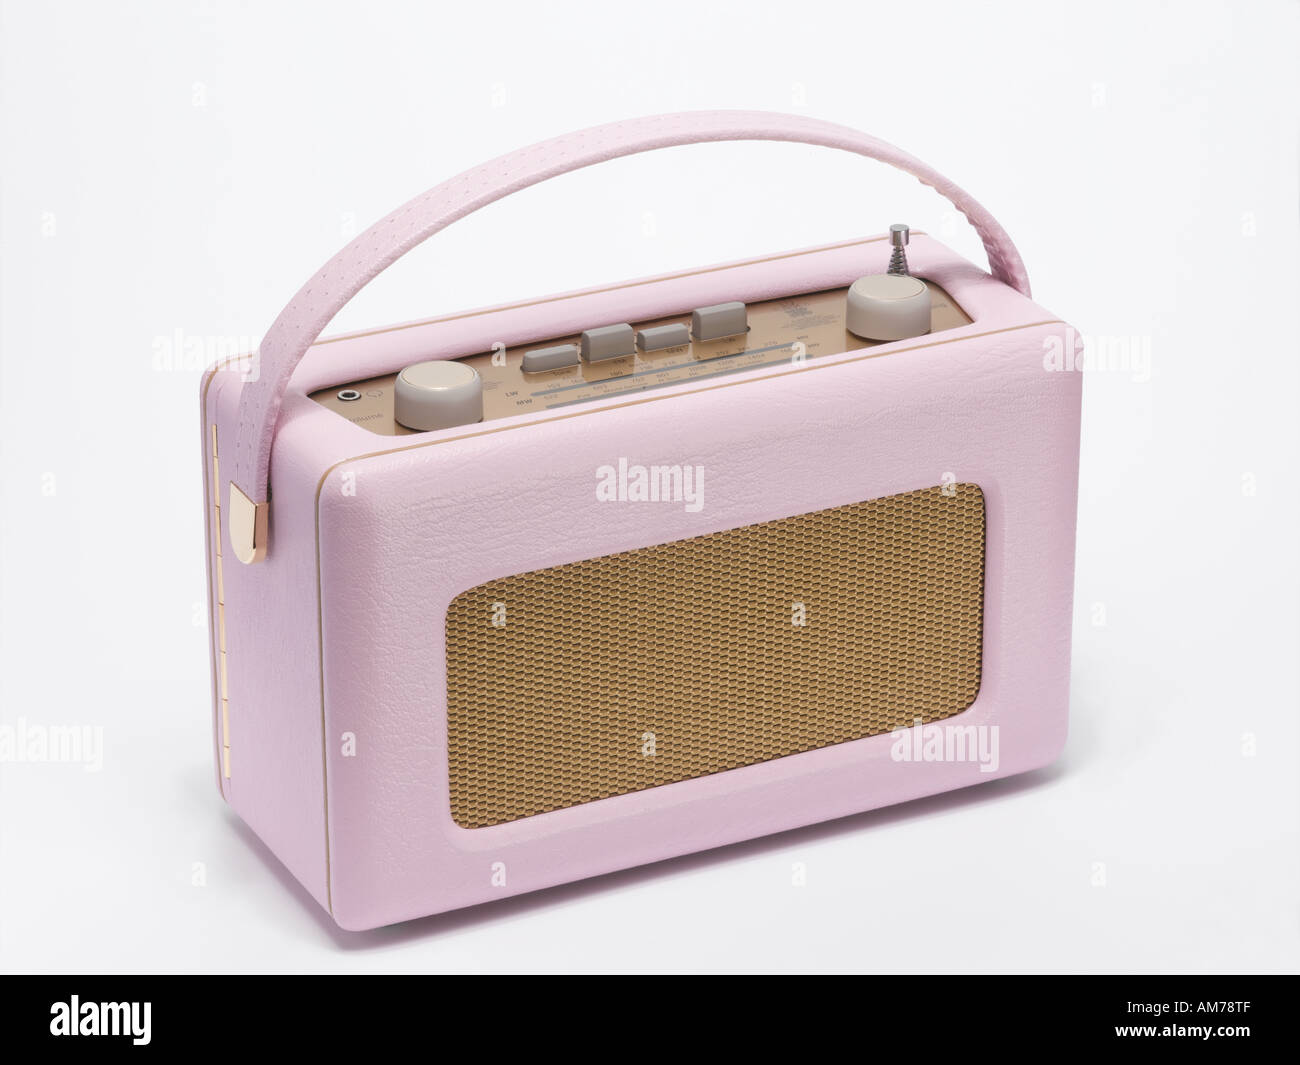 A pink radio - Stock Image